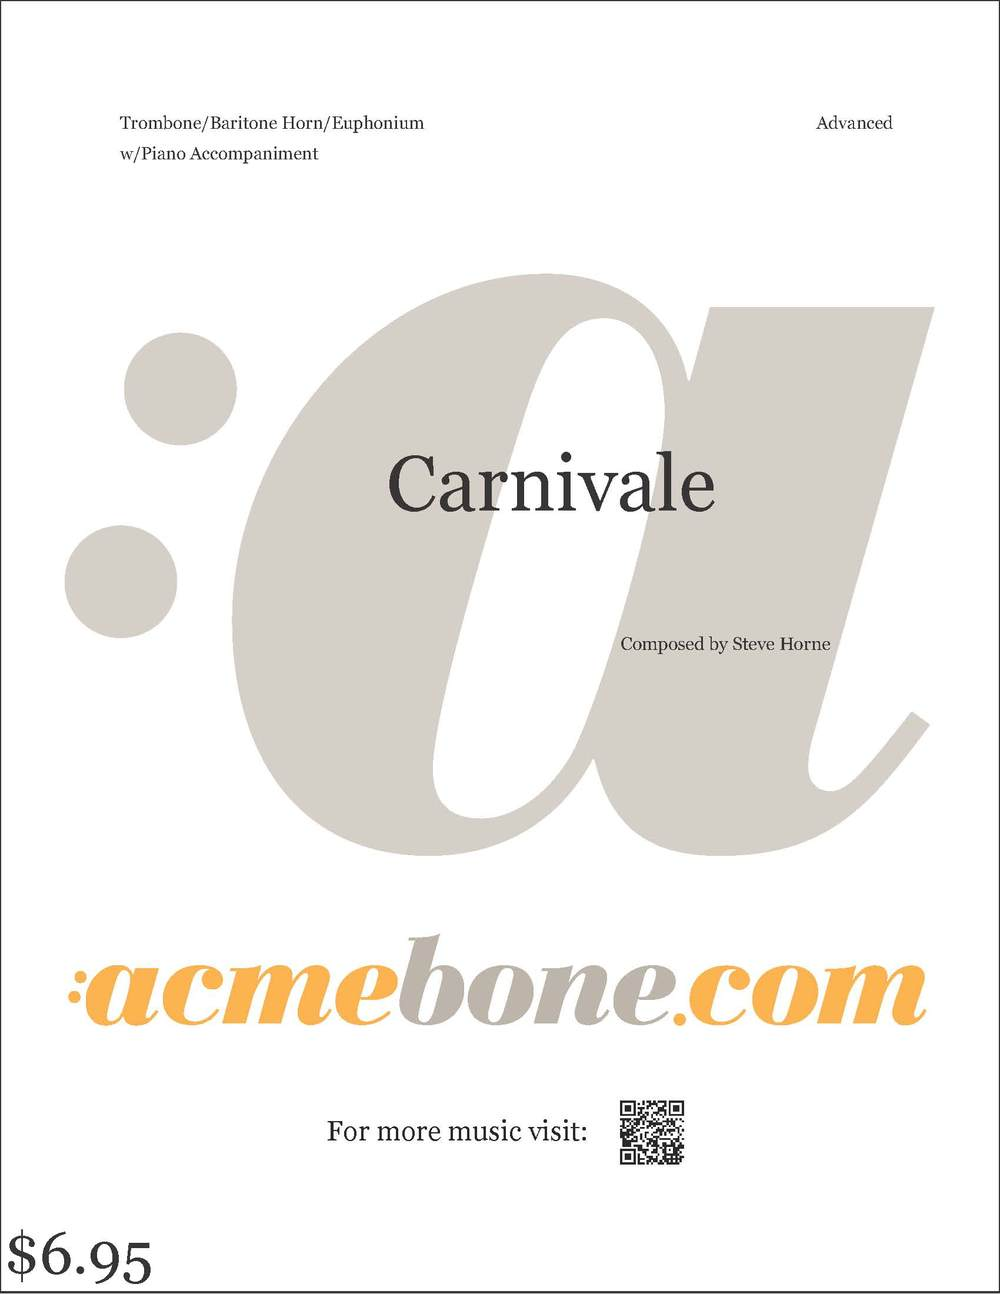 Carnivale_digital_cover_w-bo_price.jpg